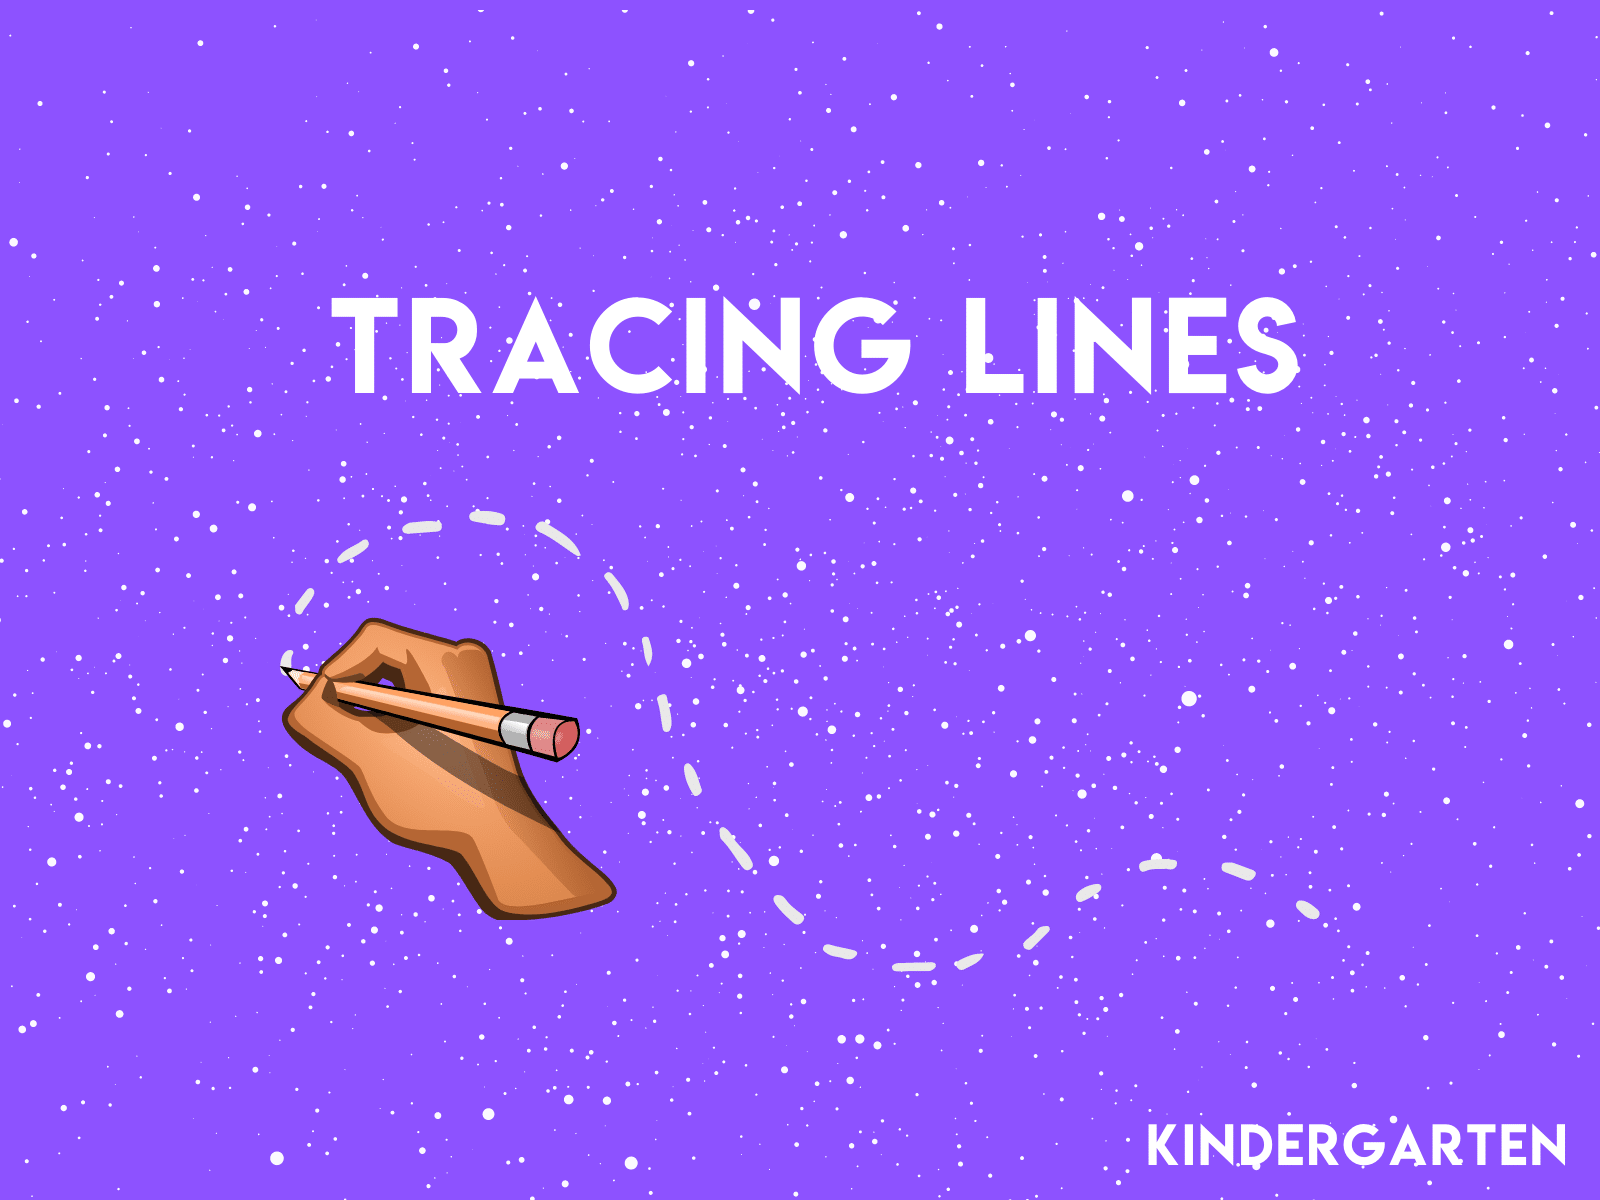 Get your kindergartener ready for number and letter writing with this free line tracing activity.